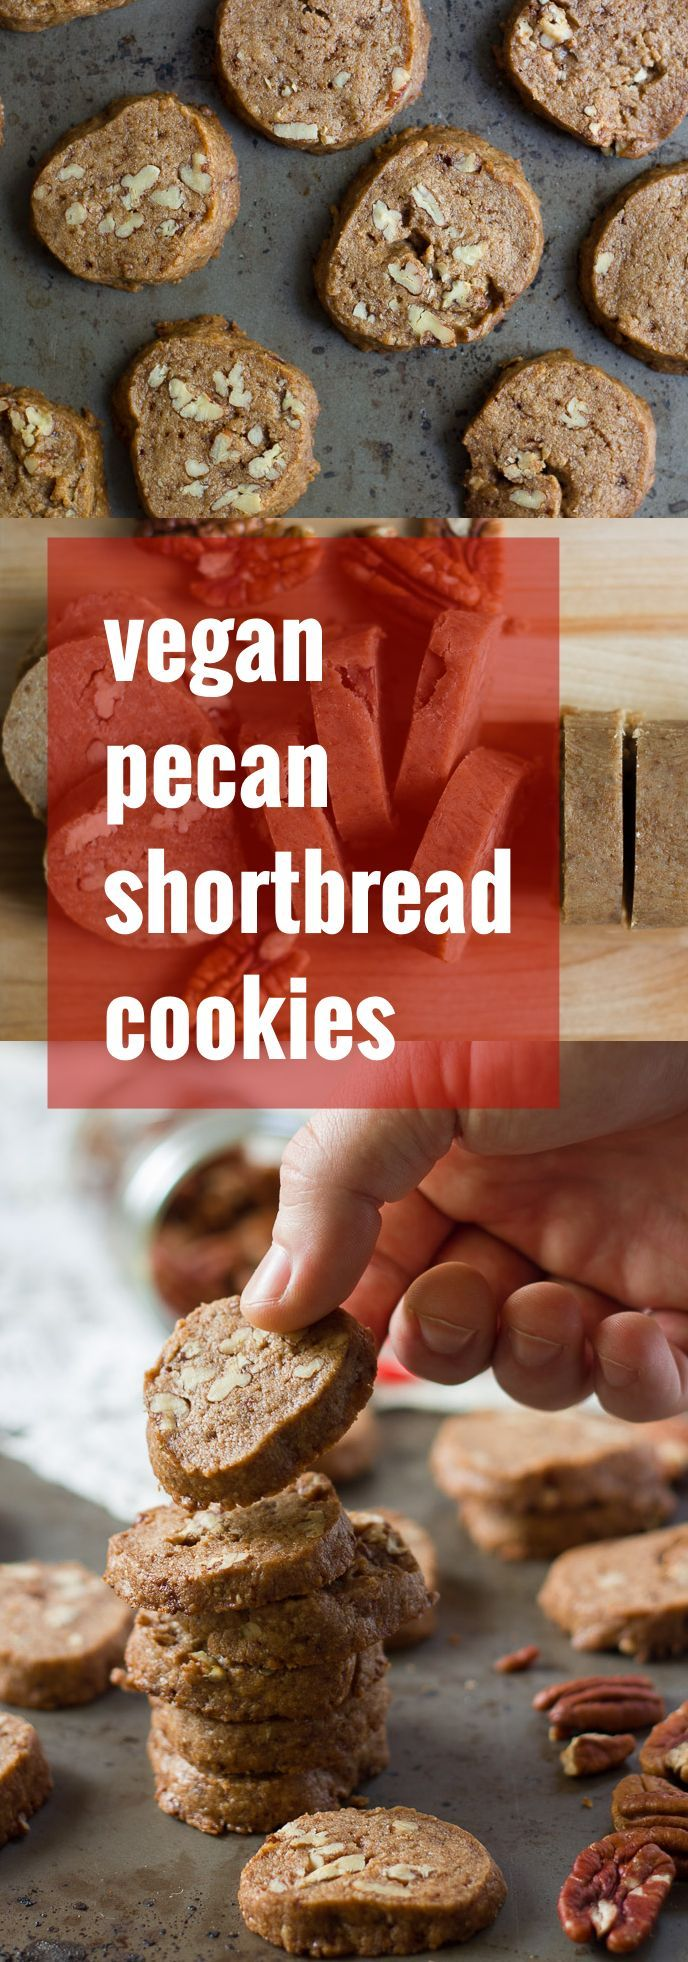 These crave-worthy vegan pecan shortbread cookies are rich, buttery, and loaded with crunchy pecans. You'd never guess they were dairy-free!